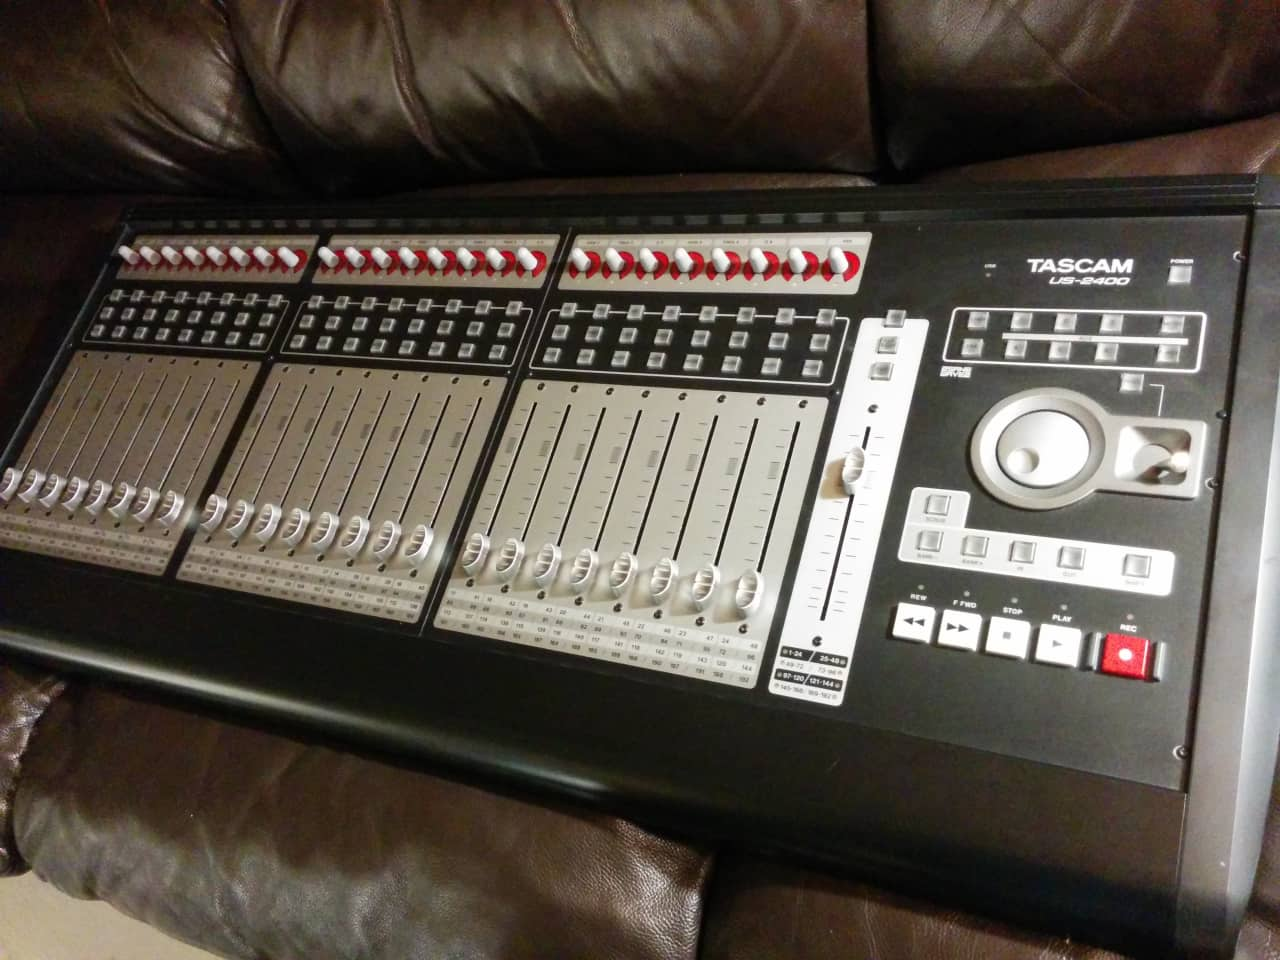 Tascam Us 2400 Daw Control Surface 25 Motorized Faders